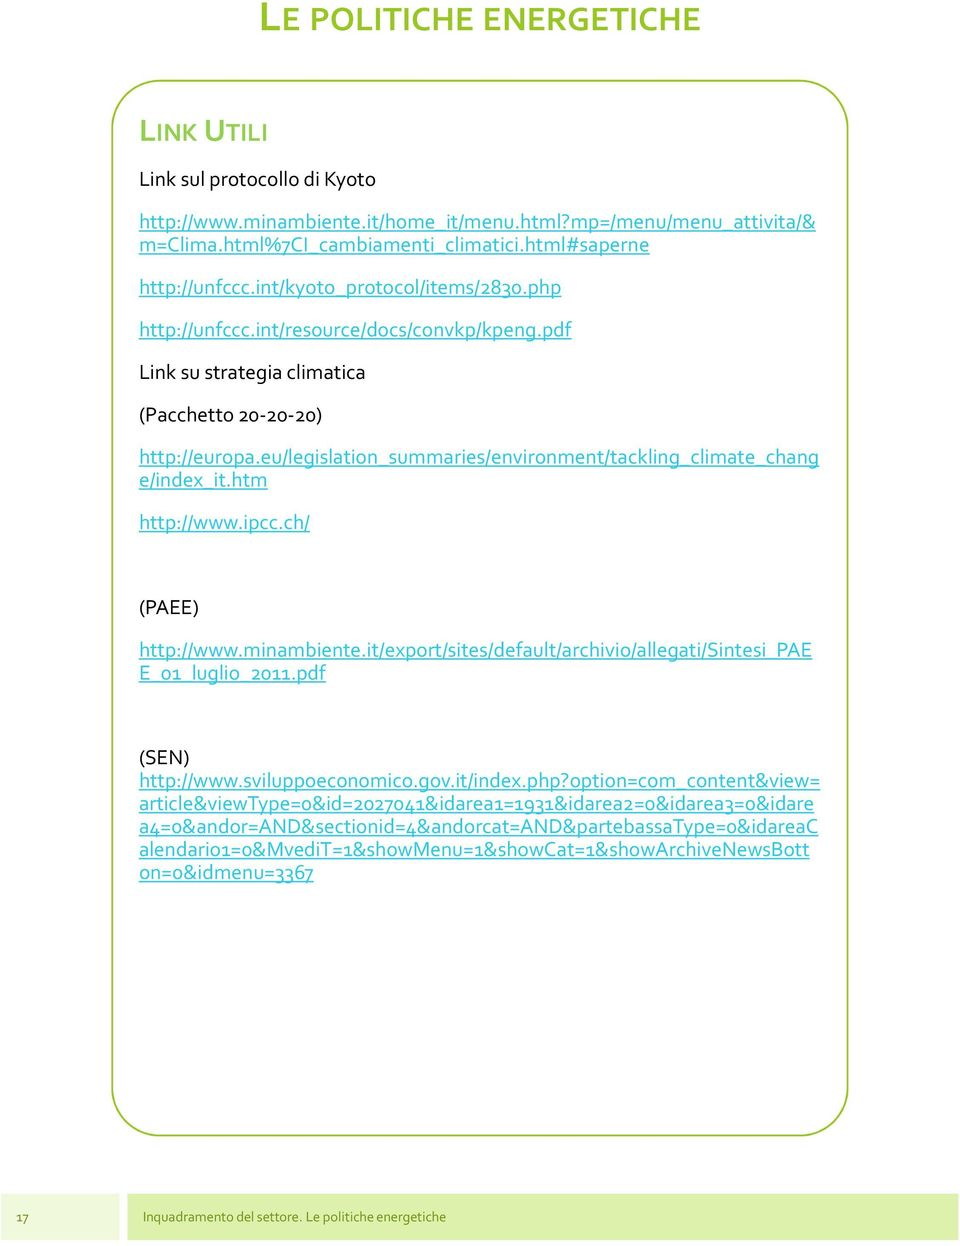 eu/legislation_summaries/environment/tackling_climate_chang e/index_it.htm http://www.ipcc.ch/ (PAEE) http://www.minambiente.it/export/sites/default/archivio/allegati/sintesi_pae E_01_luglio_2011.